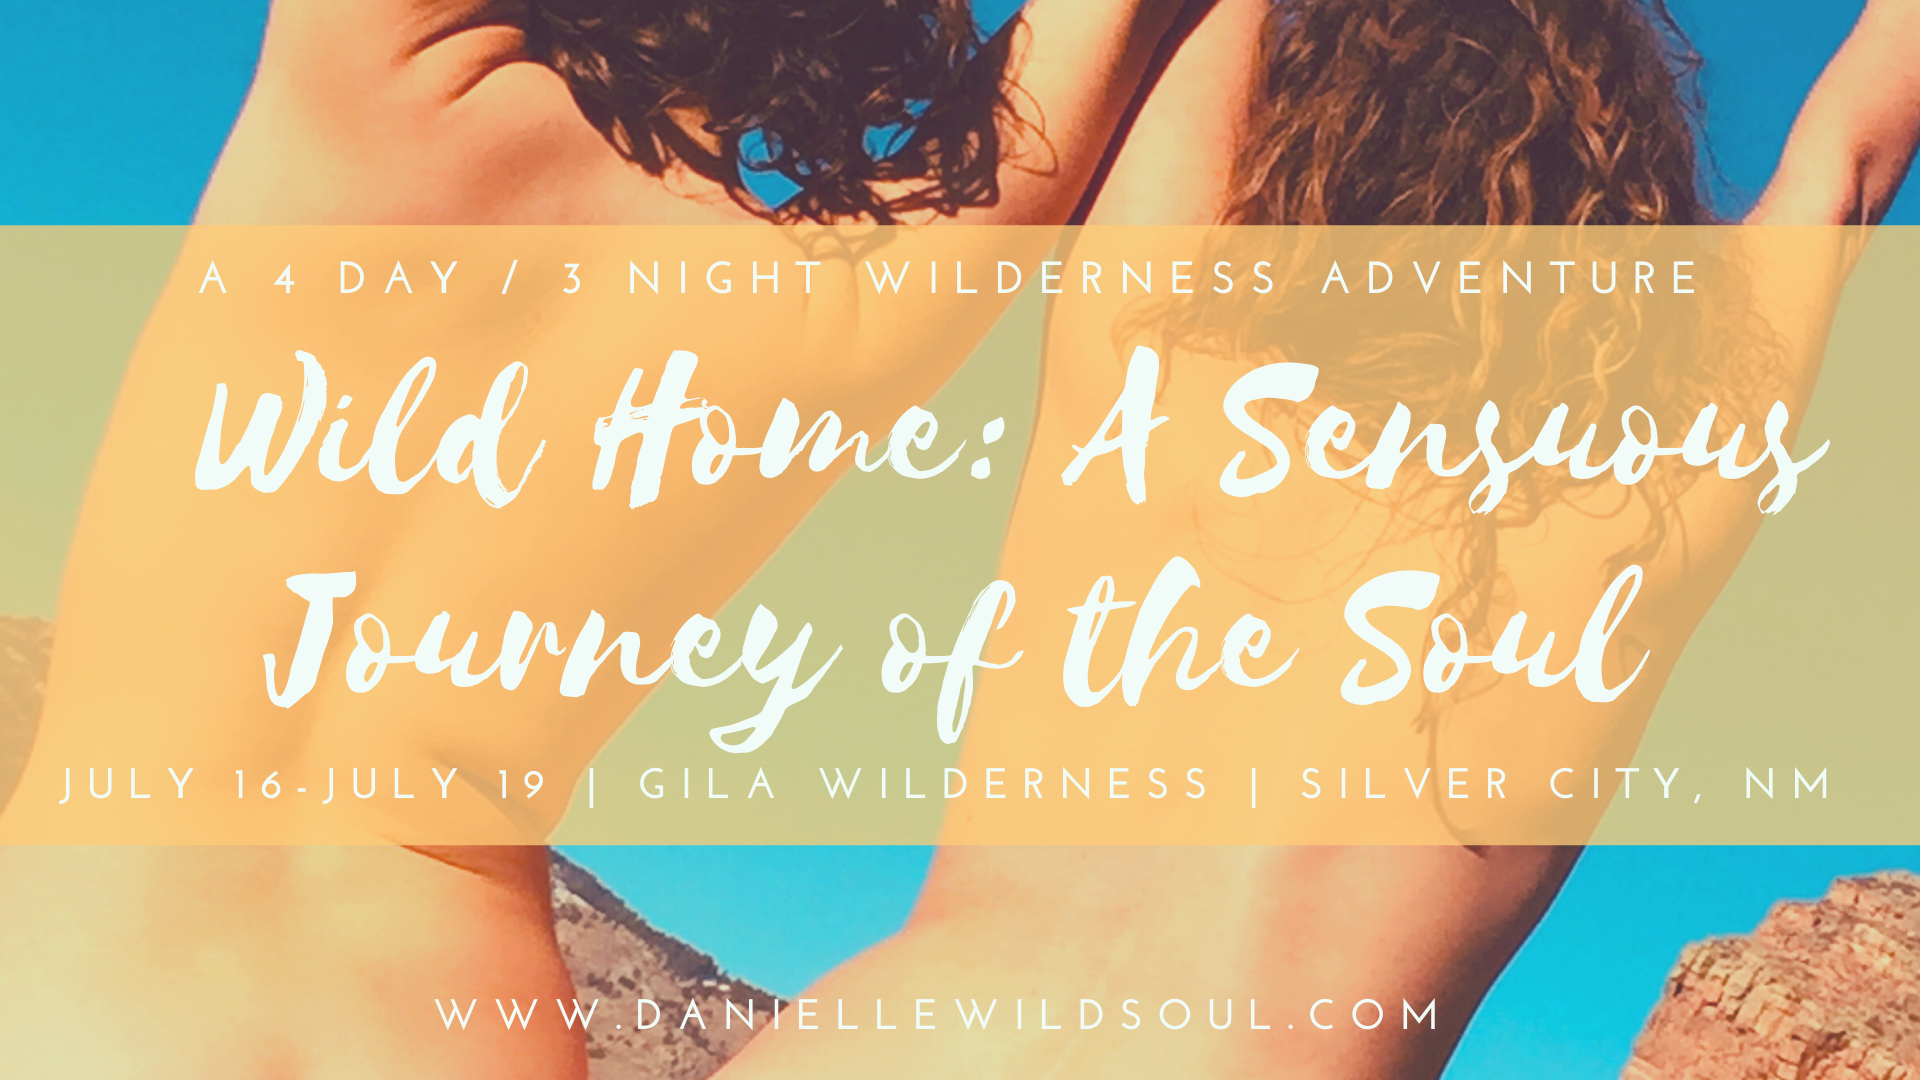 Wild Home: A Sensuous Journey of the Soul